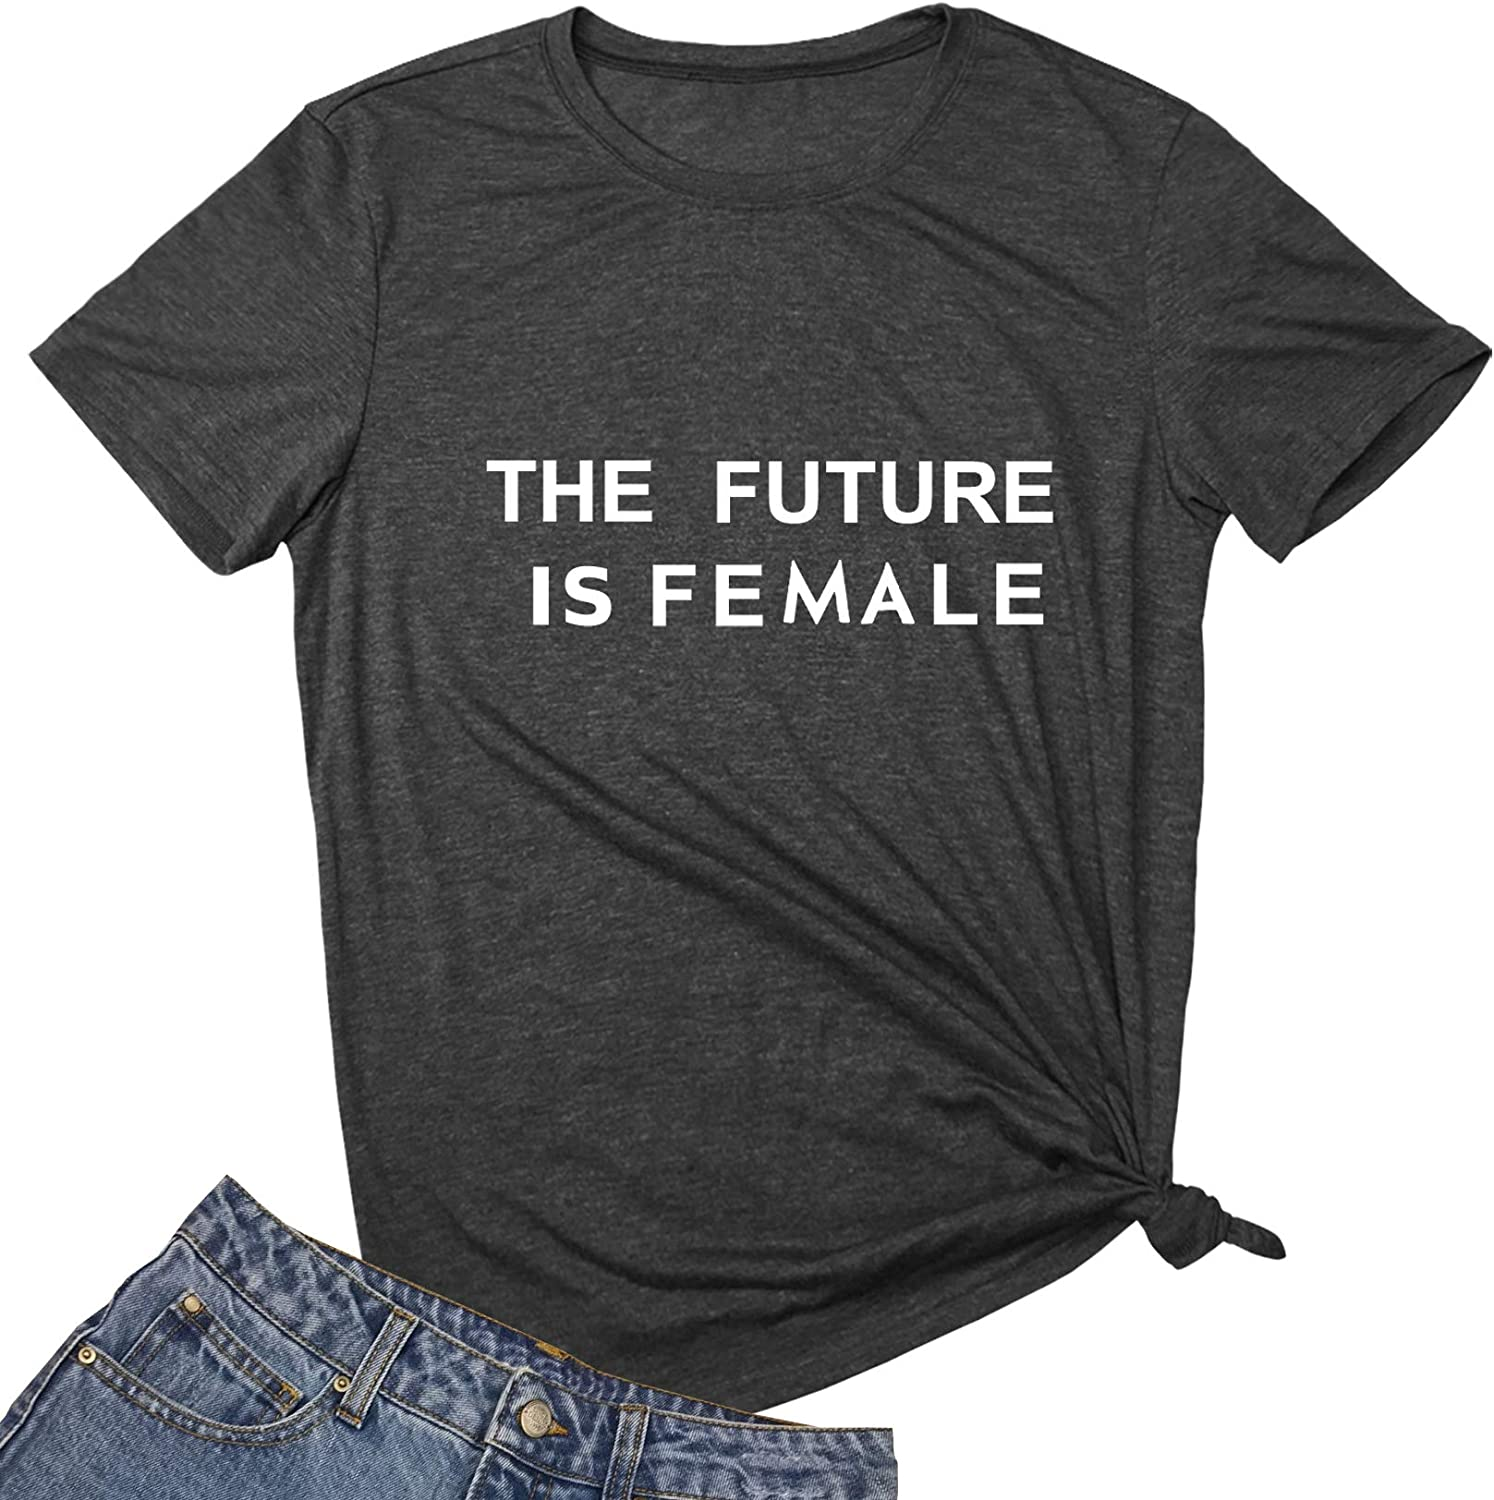 MAXTREE Women Graphic T Shirts The Future is Female Tees